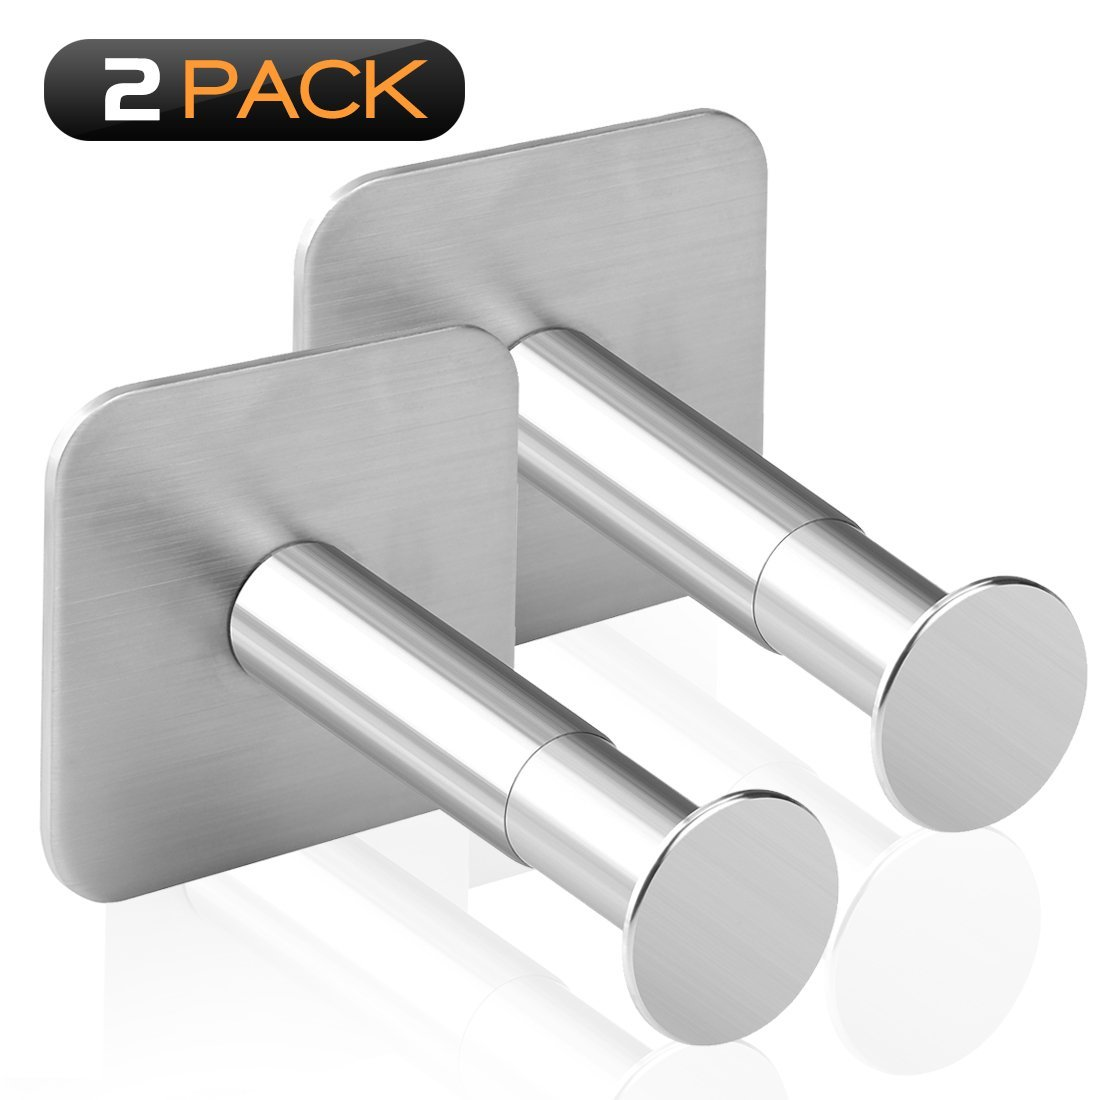 Geekria Extensible Headphone Stand Holder, Stainless Steel Stick-On with 3M Adhesive Hooks Under Desk, Stick on smooth wall, Dual Headset Hanger Mount for Most of Headphones (2pcs) EJJ3708